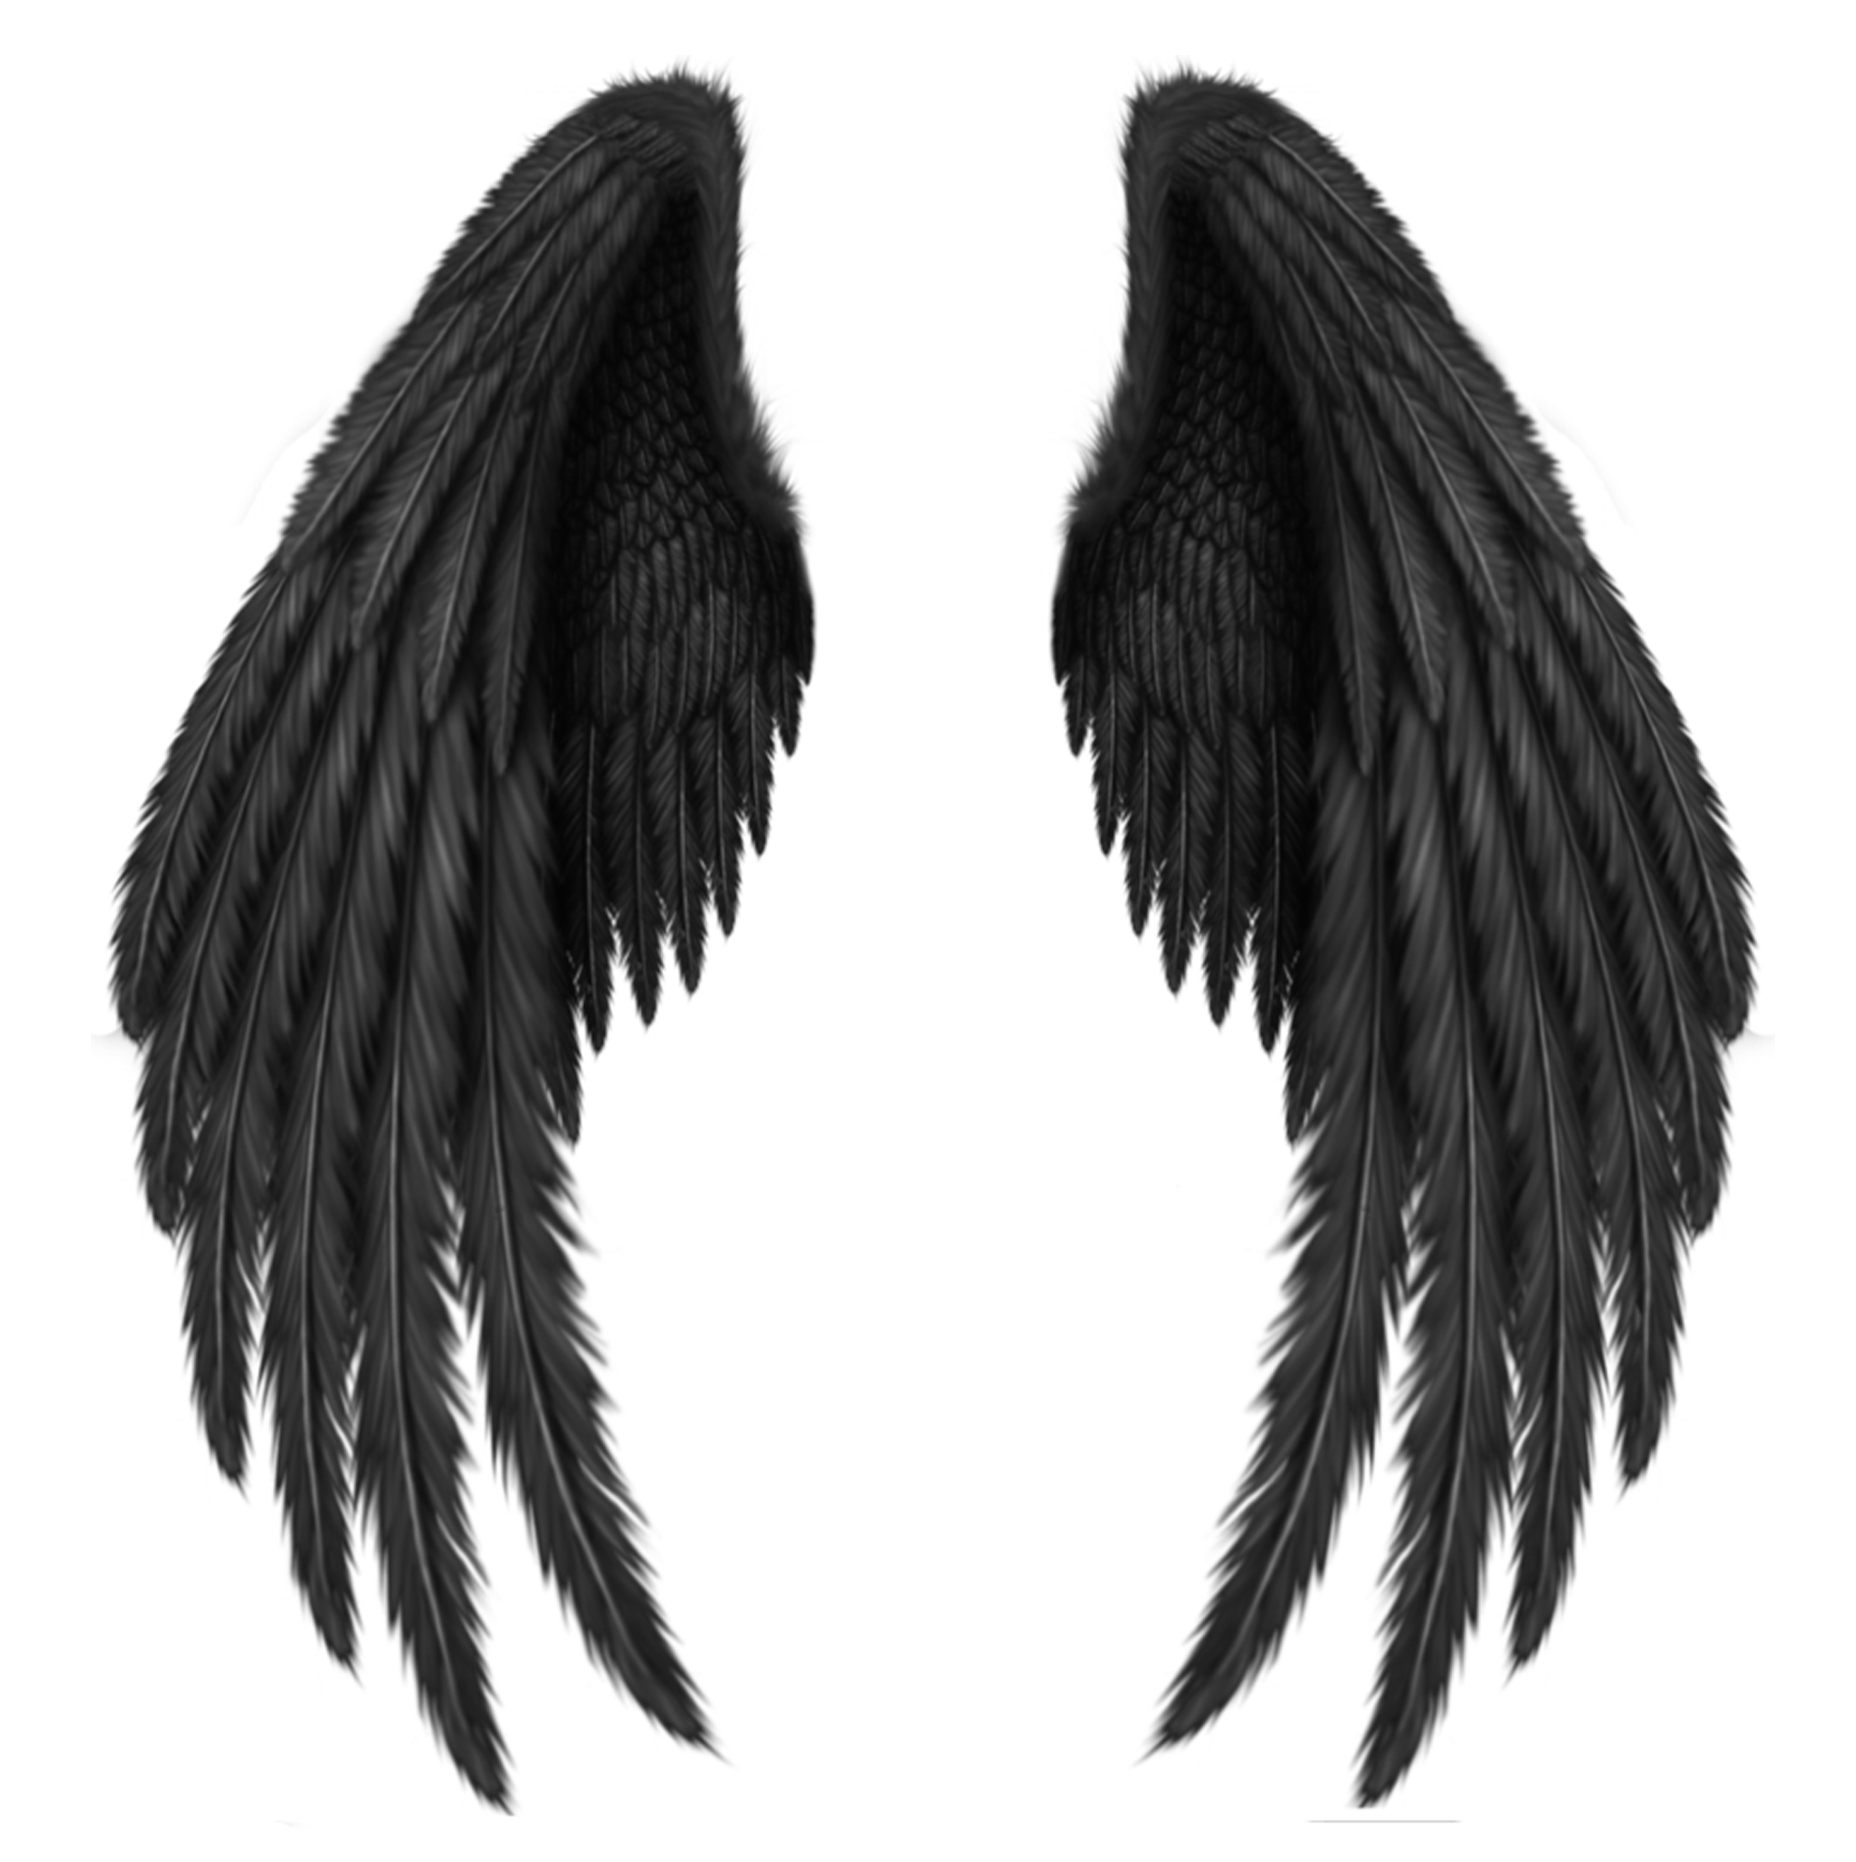 Black angel wings png. Transparent clipart picture artistically